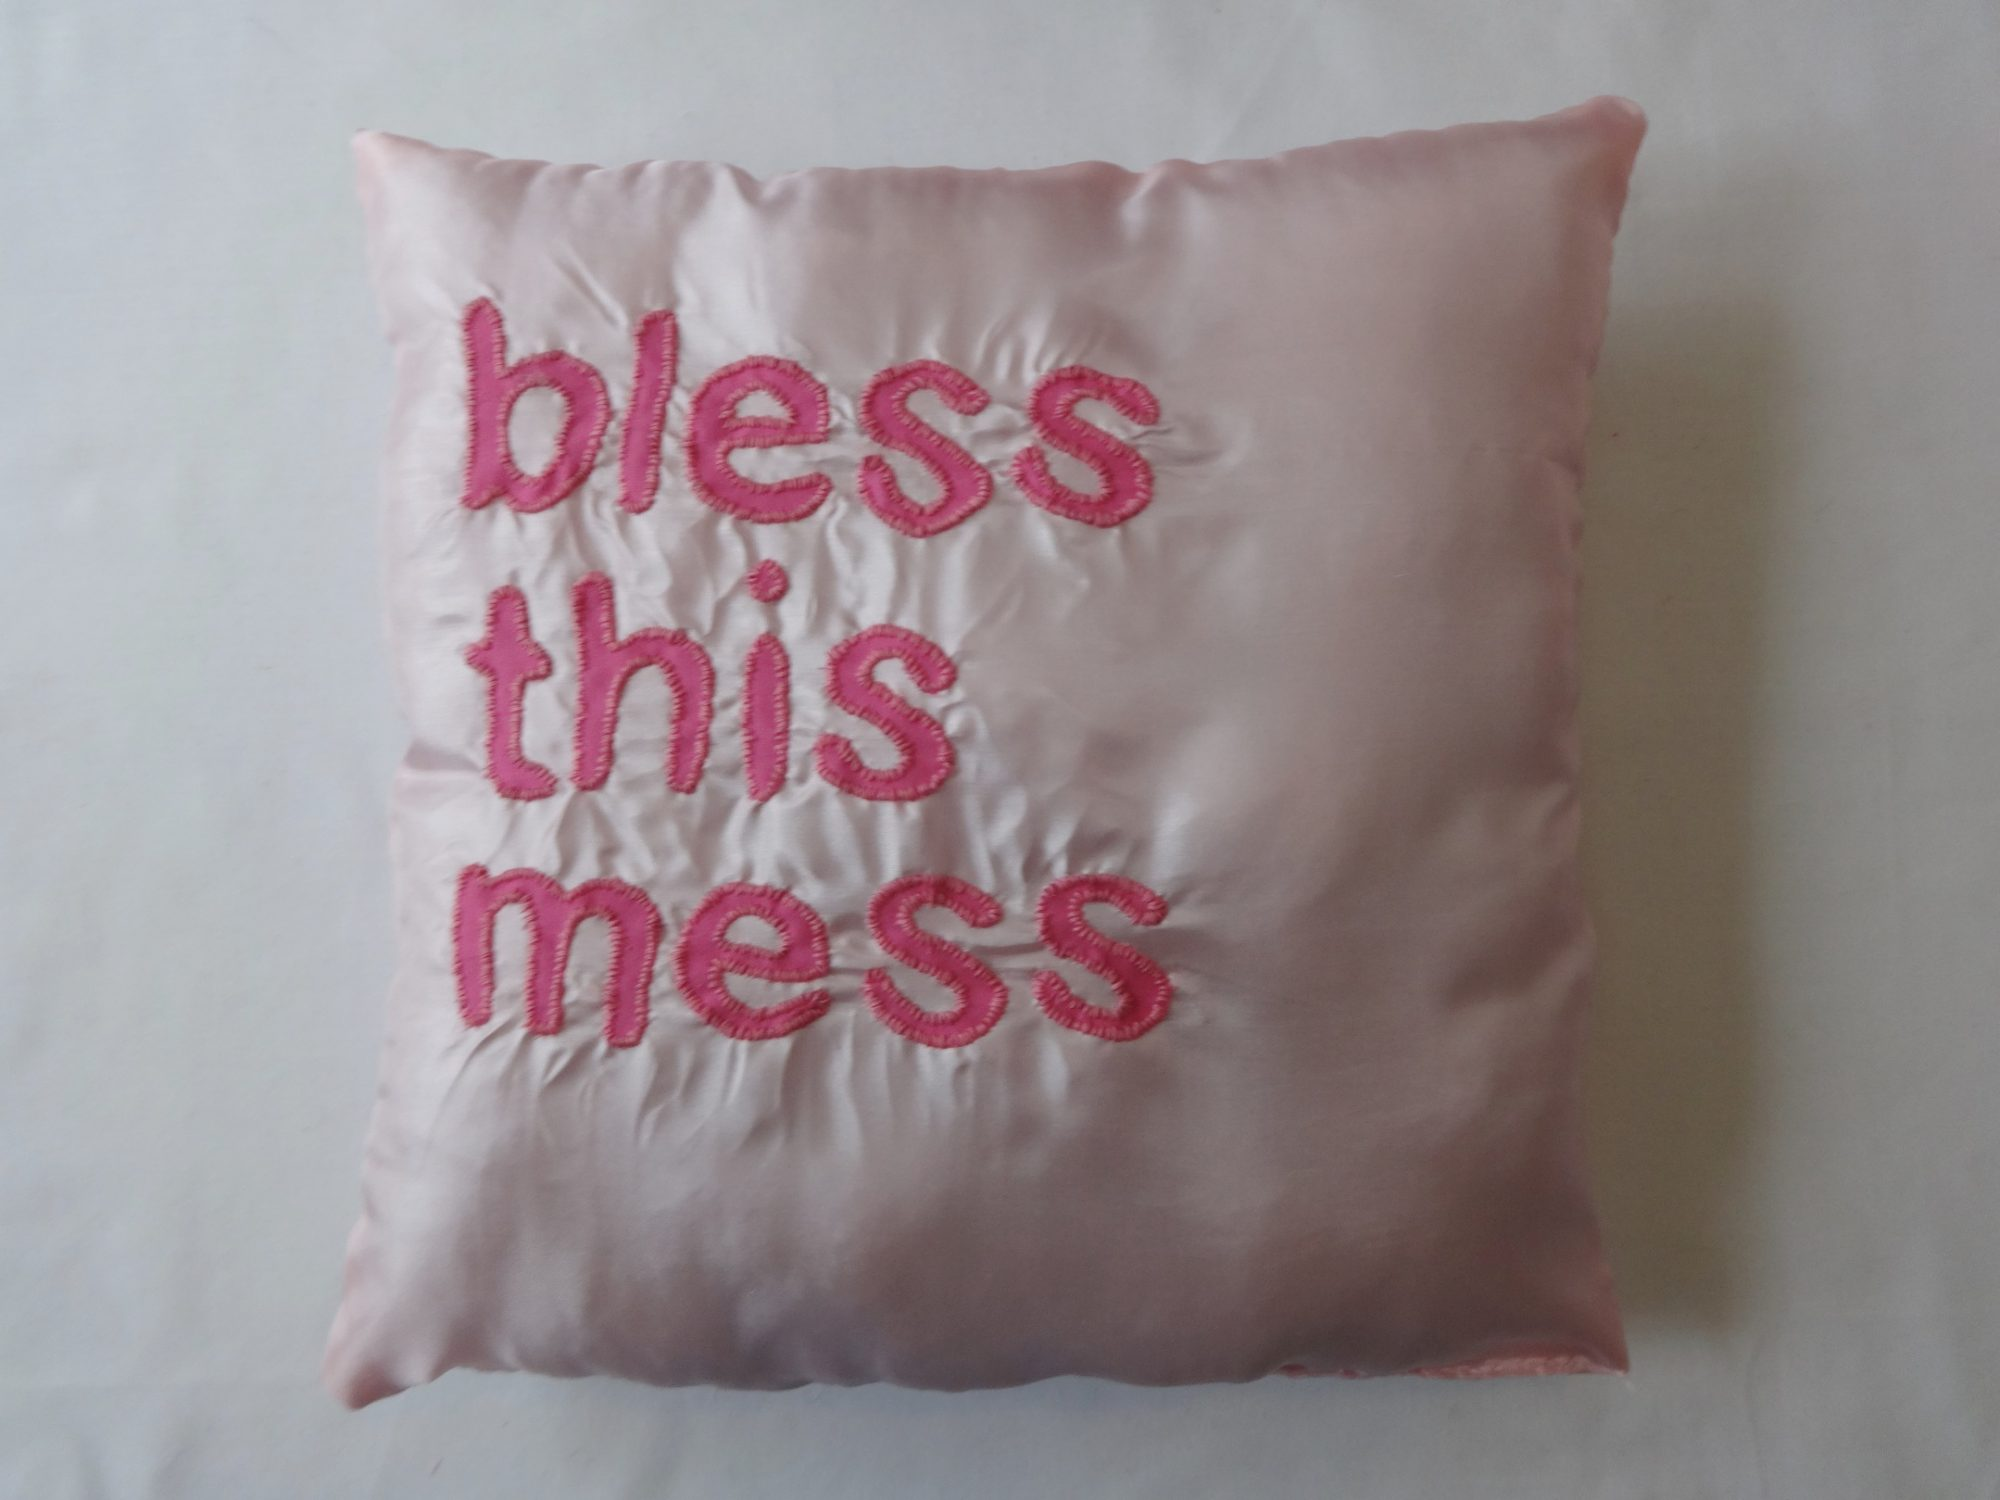 Mess Pillow Image 10:Featured Image